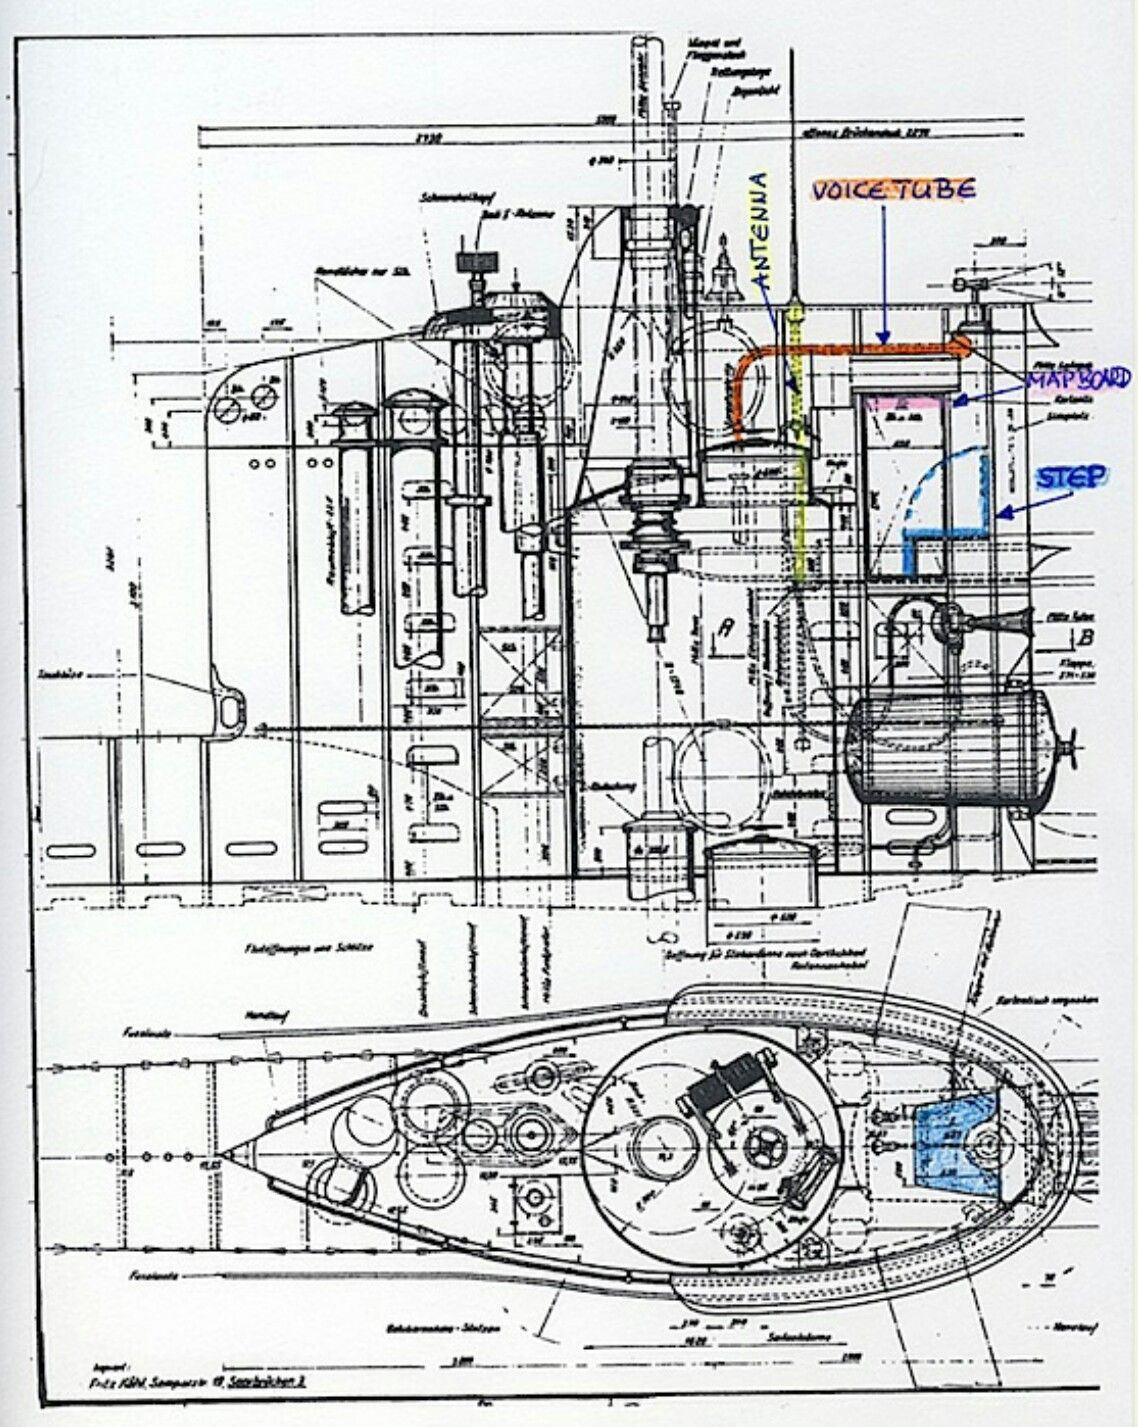 German Type Xxiii U Boat Diagram Another Wiring Diagrams Aguilar Preamp Tower Ponorky Pinterest Submarines Rh Com Captured Interior Pictures